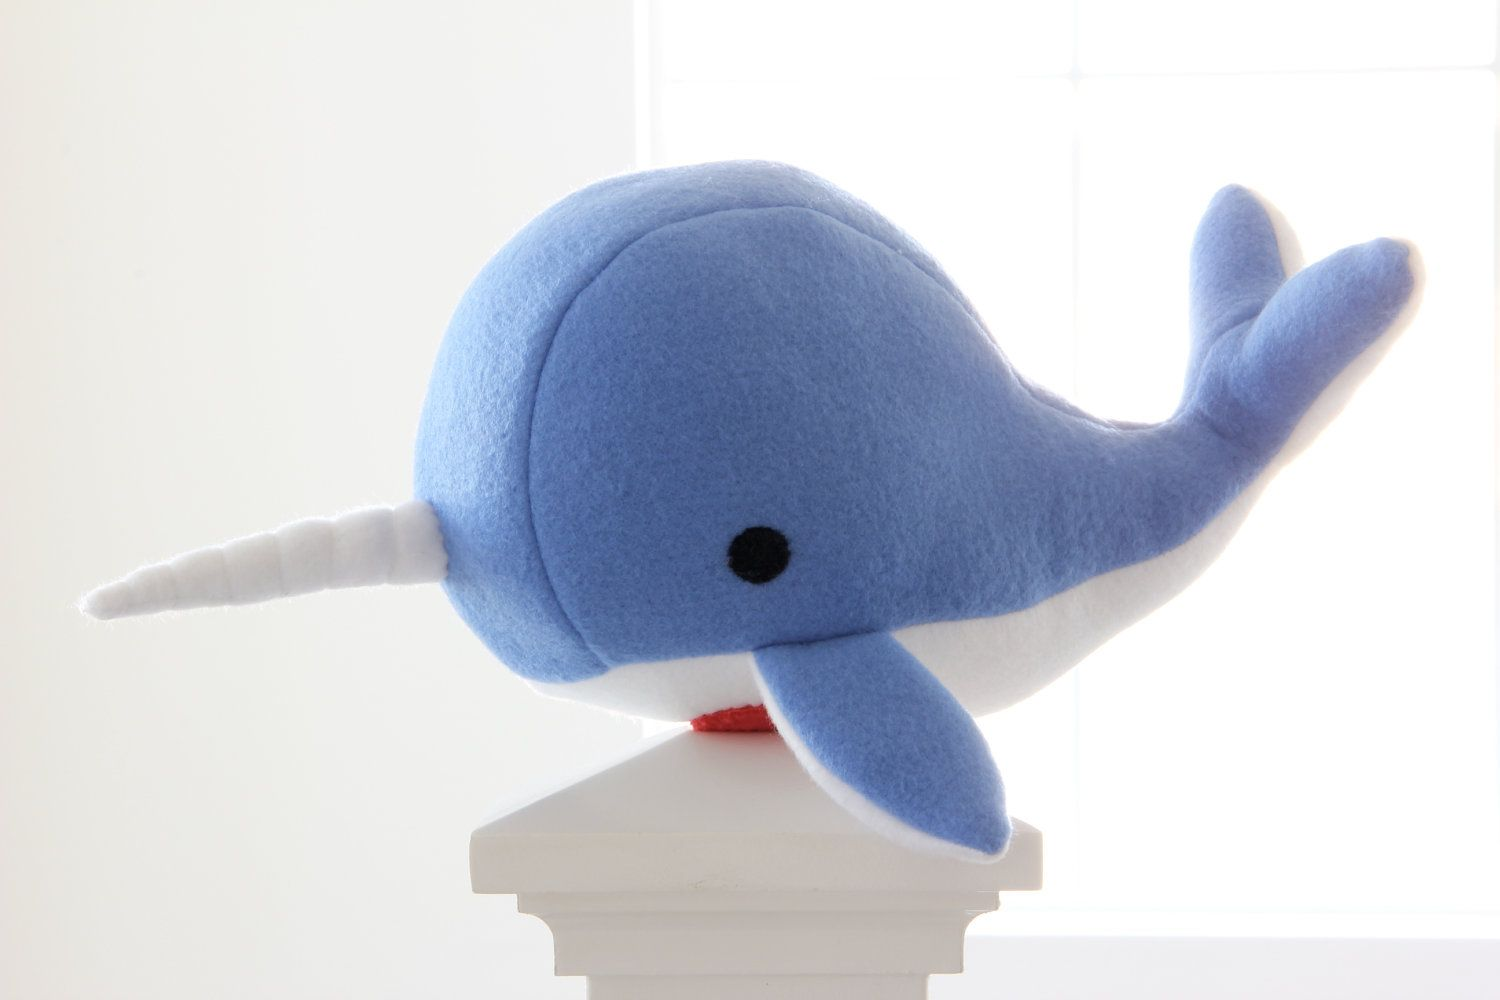 Pin by Lynn Arwady on Narwhals Narwhal plush, Narwhal